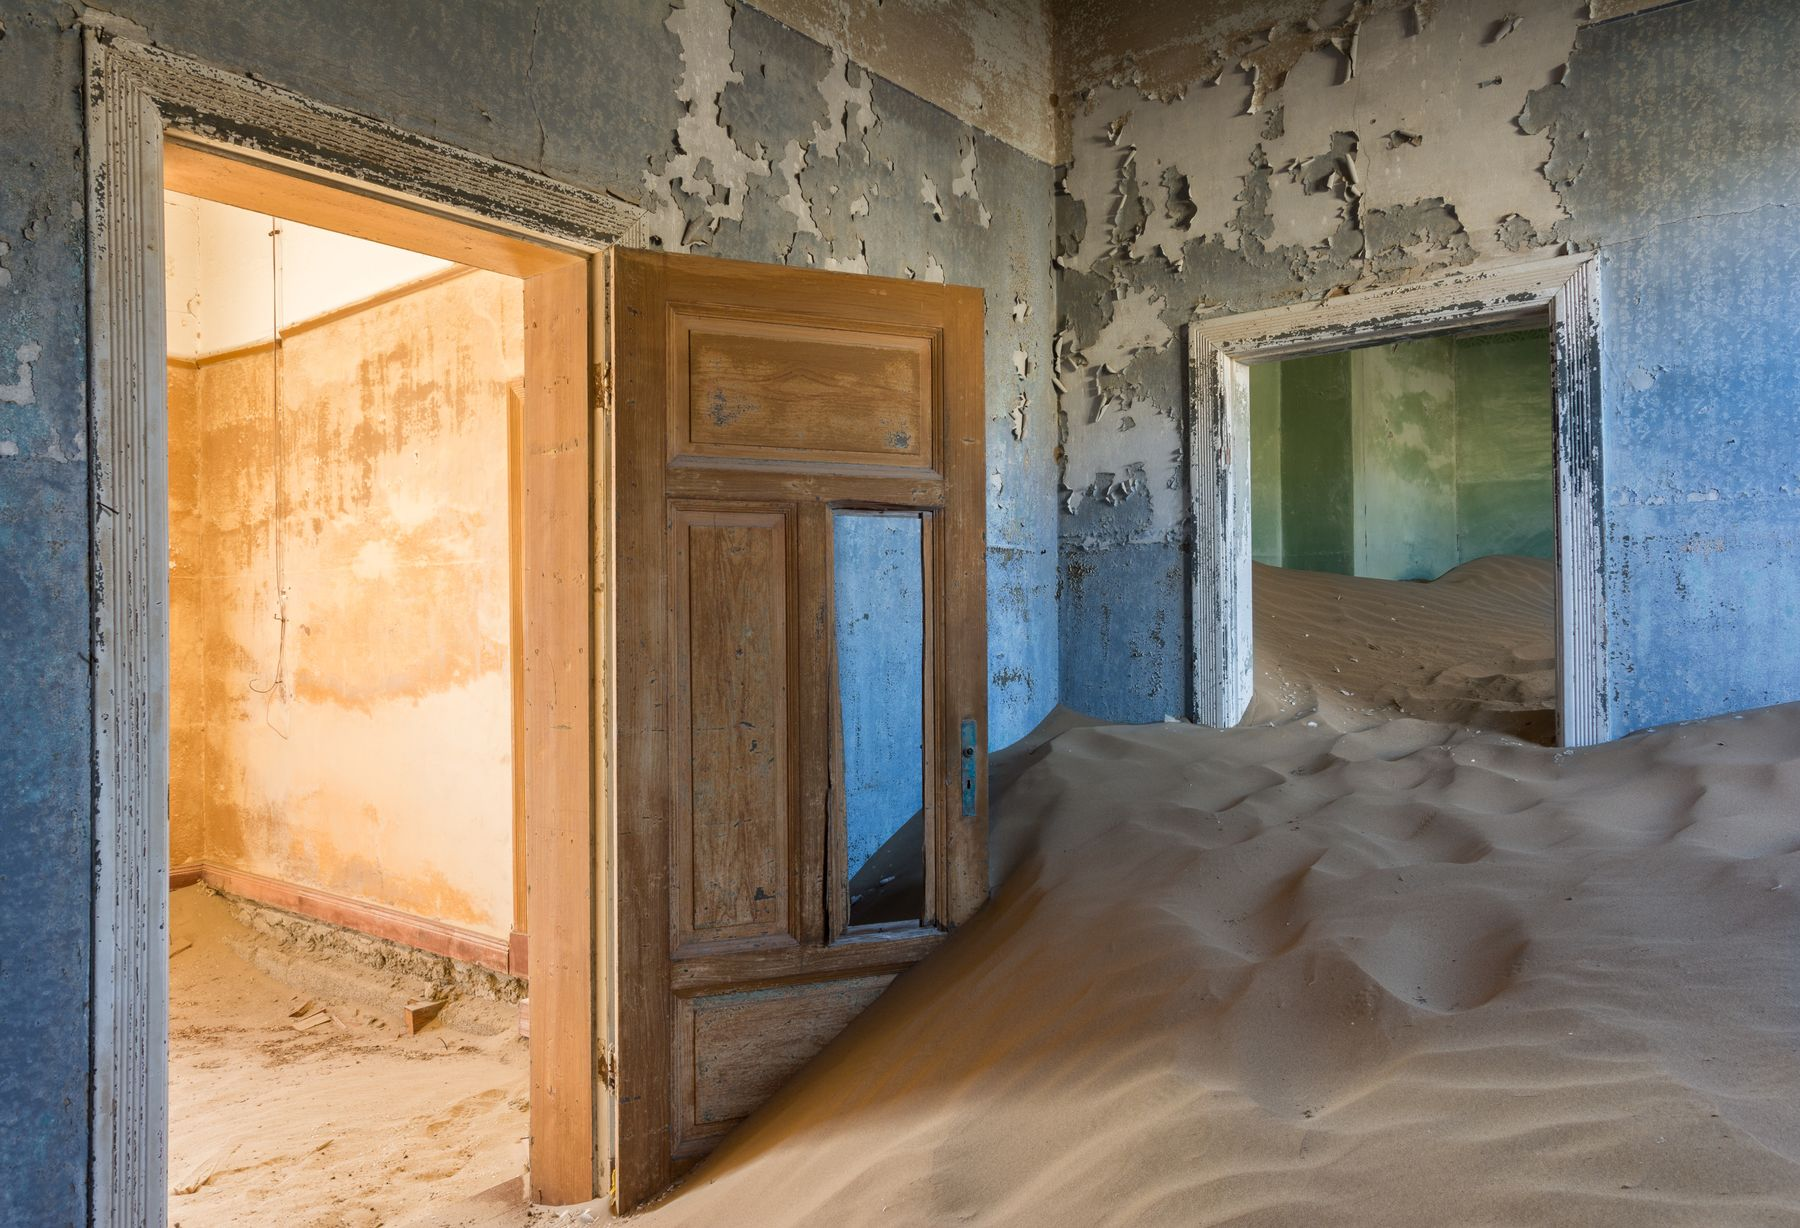 Building full of sand in Kolmanskop, and abandoned city in Namibia